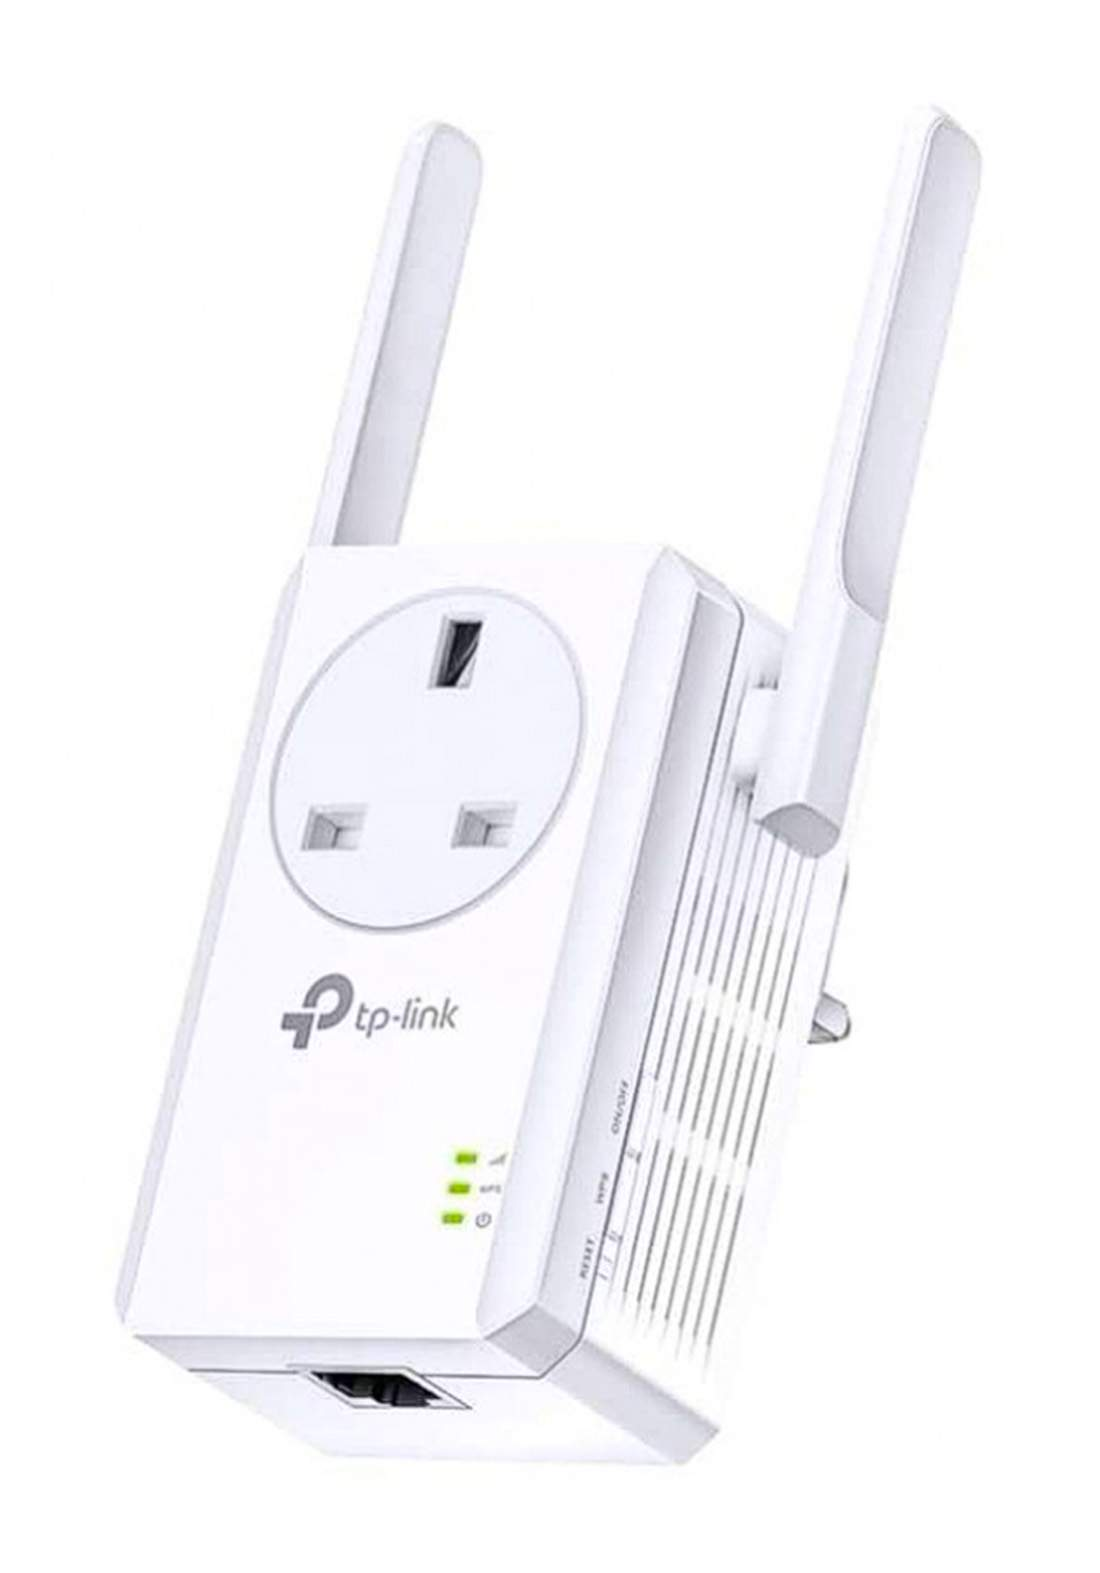 TP-LINK TL-WA860 300Mbps Wi-Fi Range Extender with AC Passthrough -White